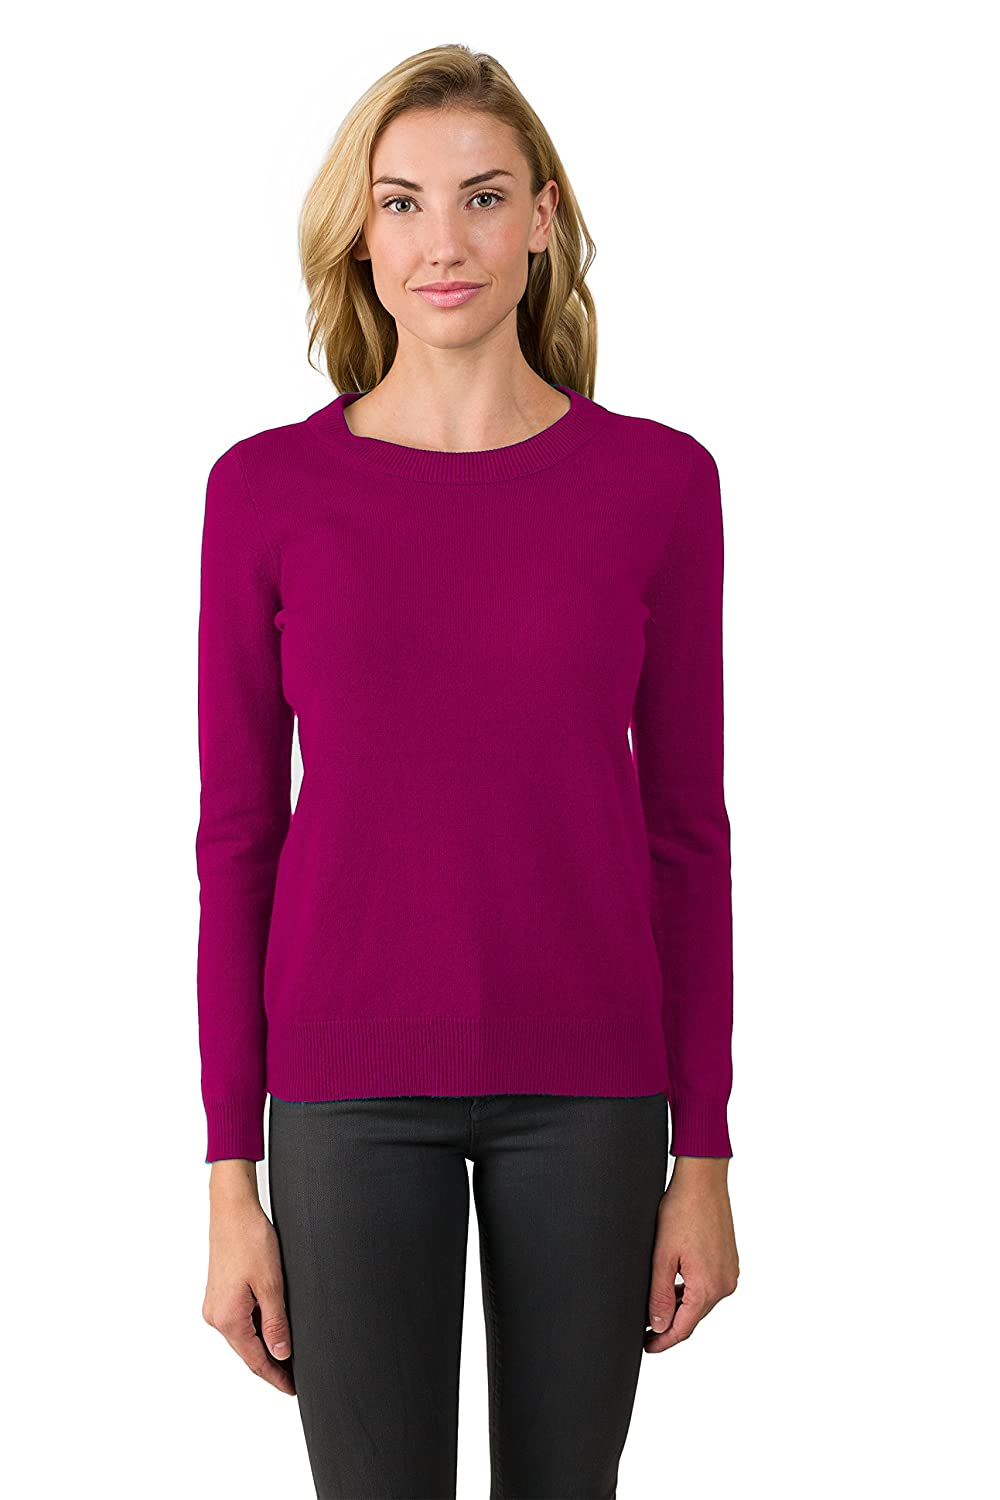 Berry JENNIE LIU Women's 100% Pure Cashmere Long Sleeve Crew Neck Sweater